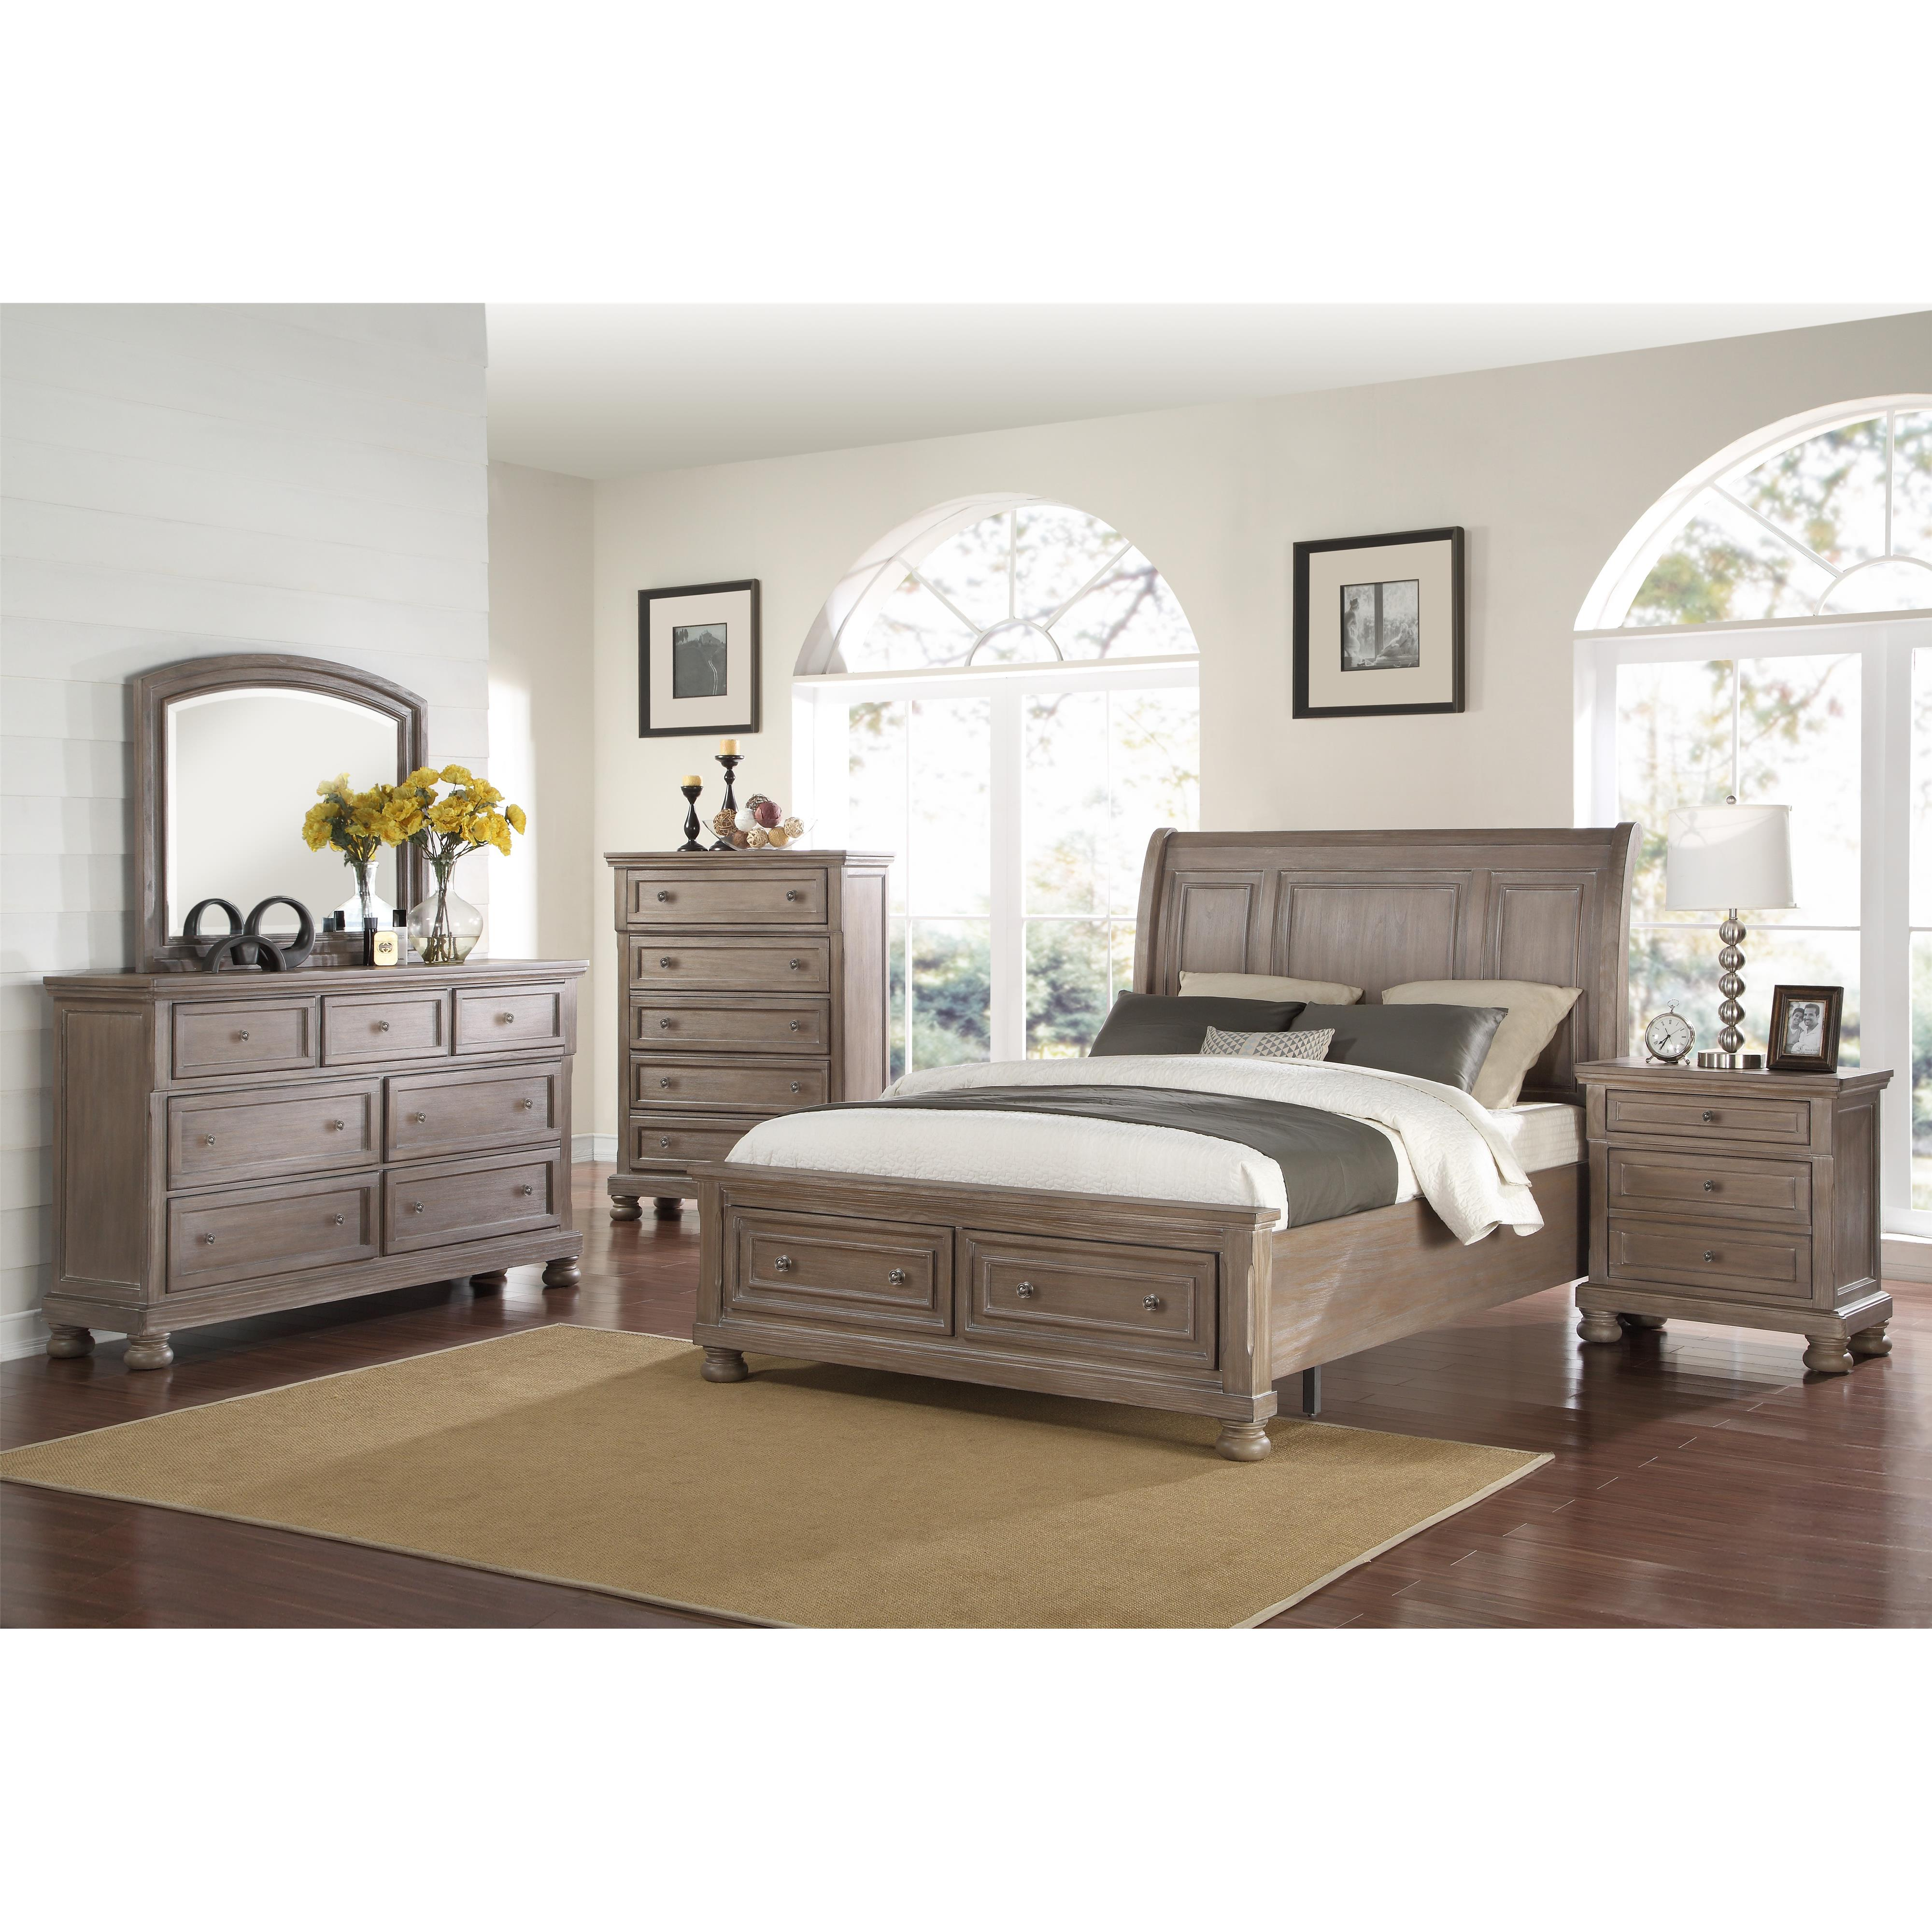 Allegra Queen Bedroom Group by New Classic at Beds N Stuff